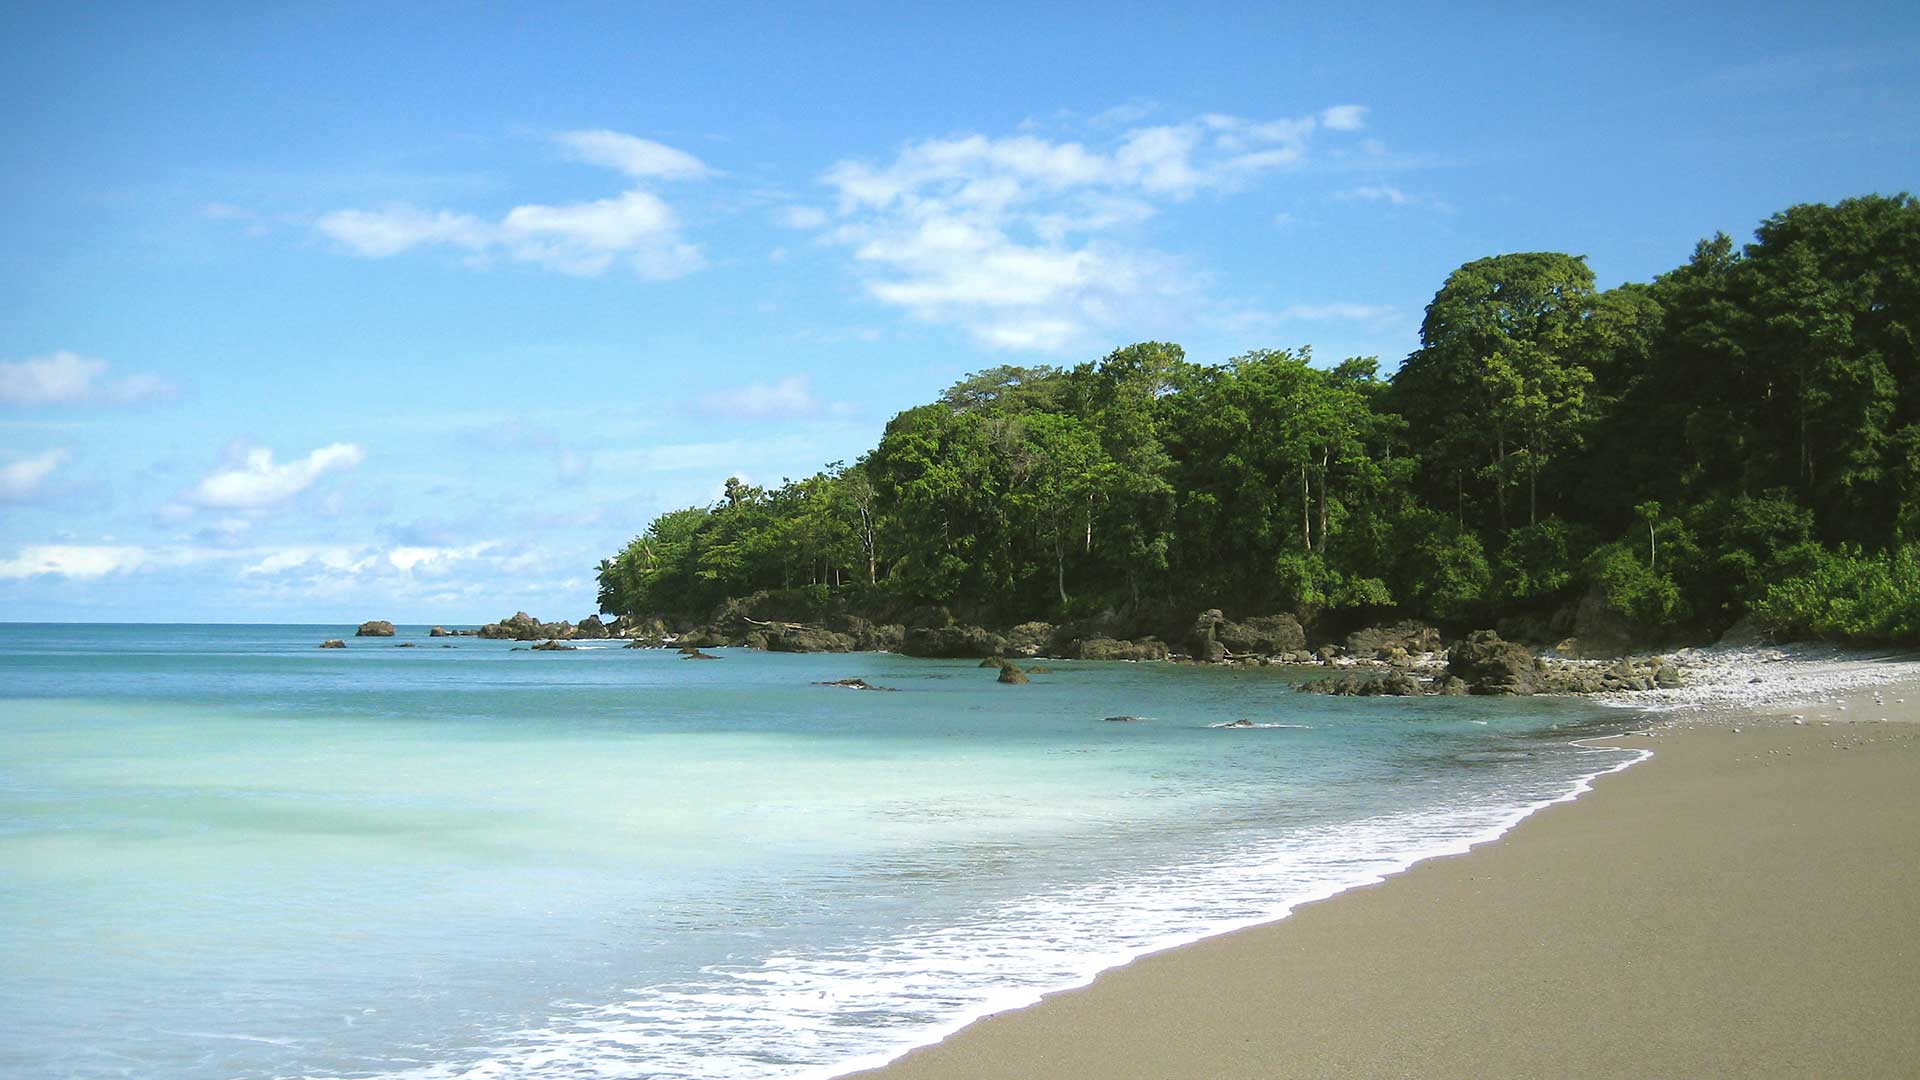 Costa Rica Wallpaper Backgrounds - HD Wallpapers Pop